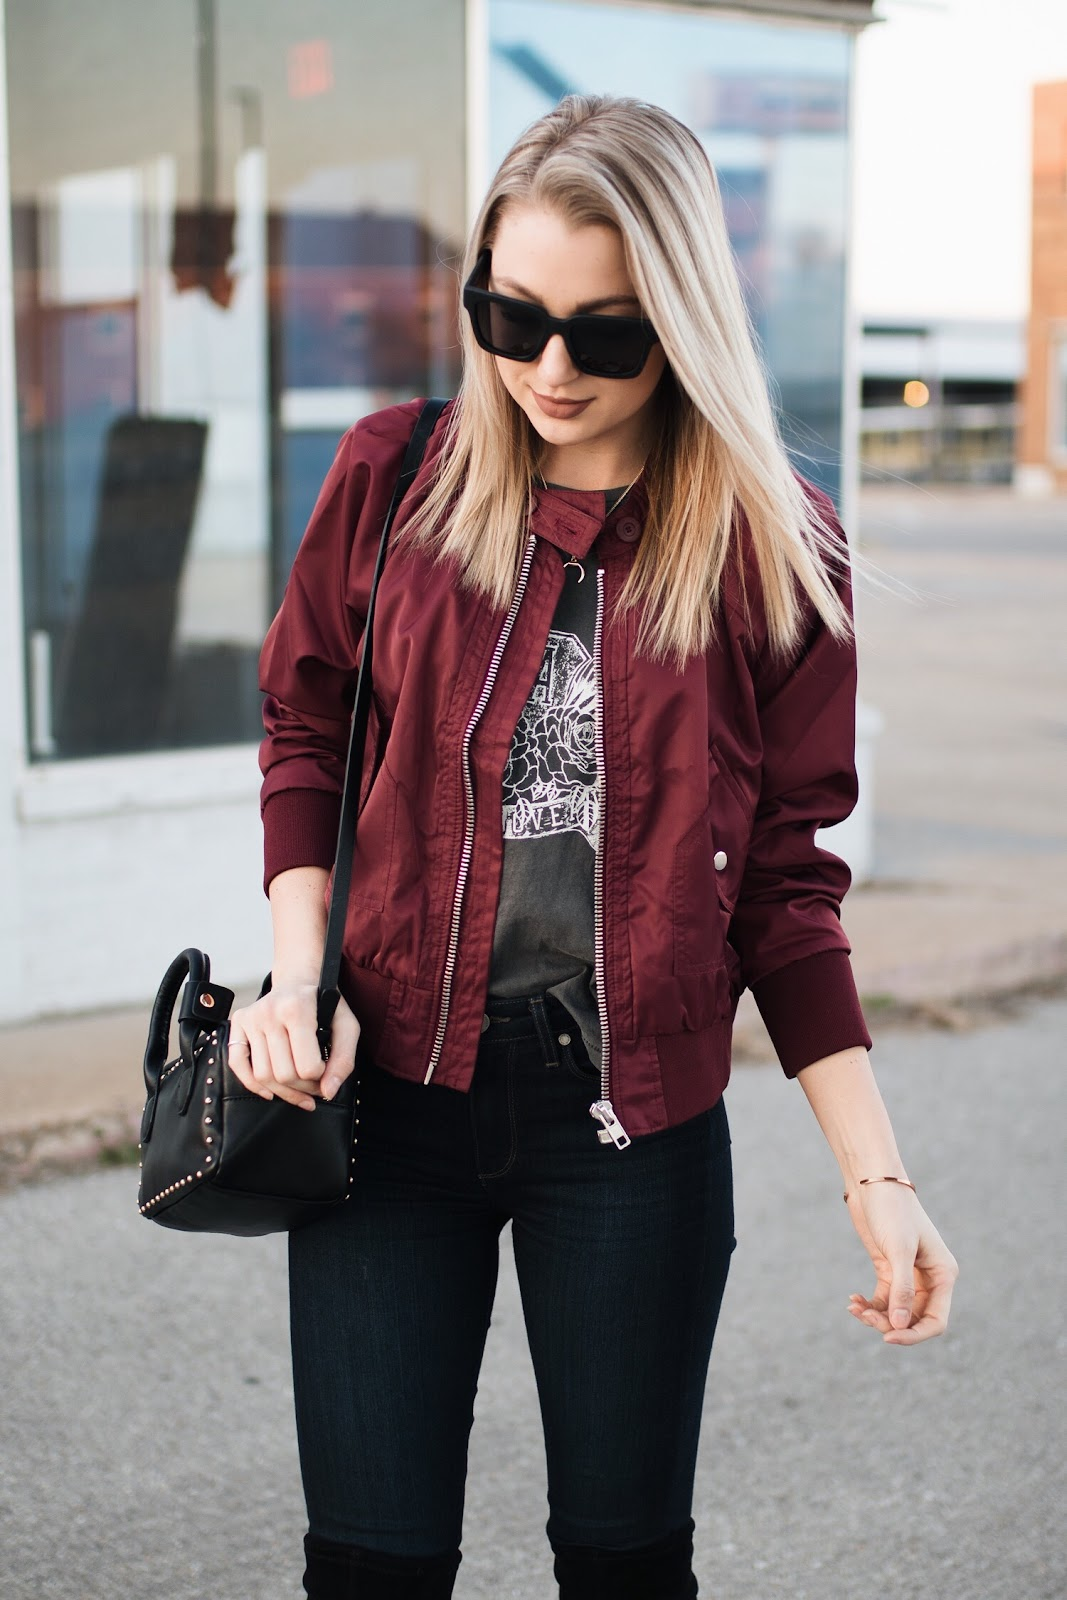 bomber jacket over a graphic tee